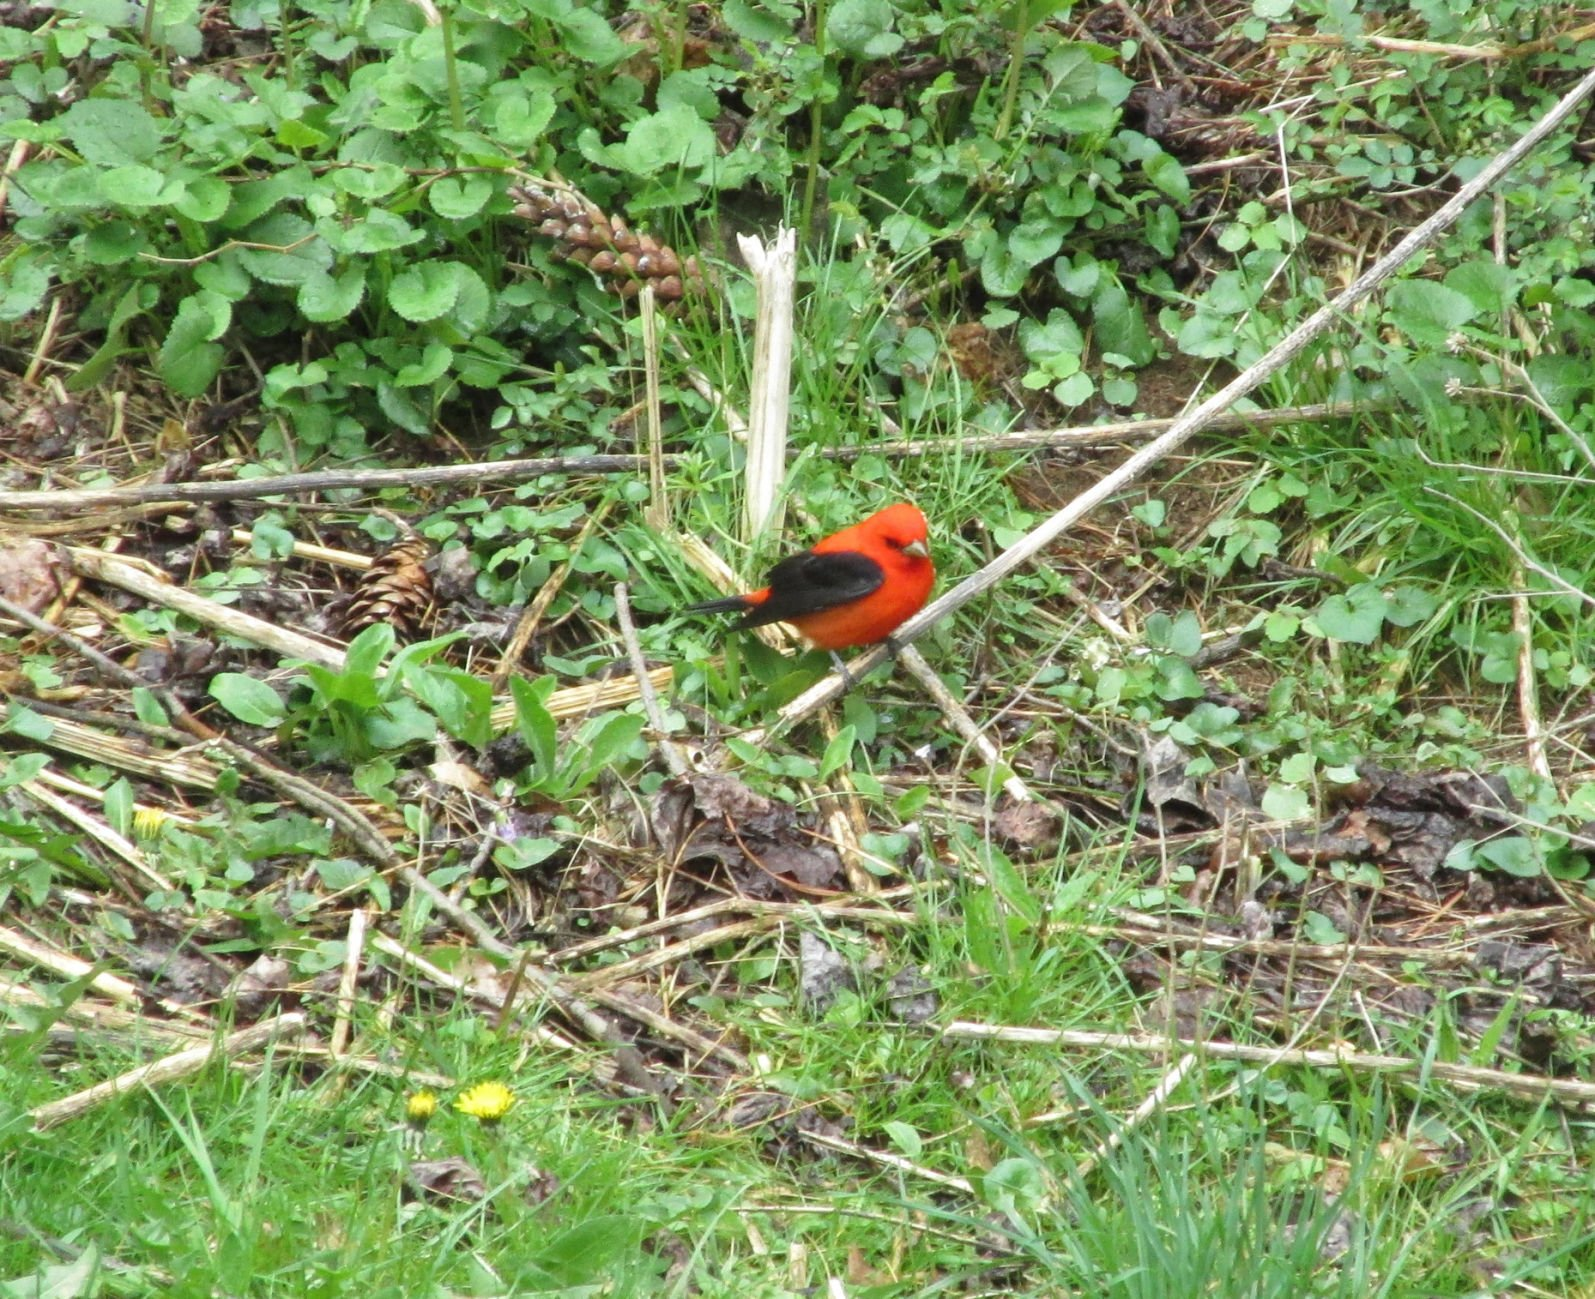 Image of: Male Sweet Surprise The Male Scarlet Tanager Stands Out From Other Birds Bristol Herald Courier Sweet Surprise The Male Scarlet Tanager Stands Out From Other